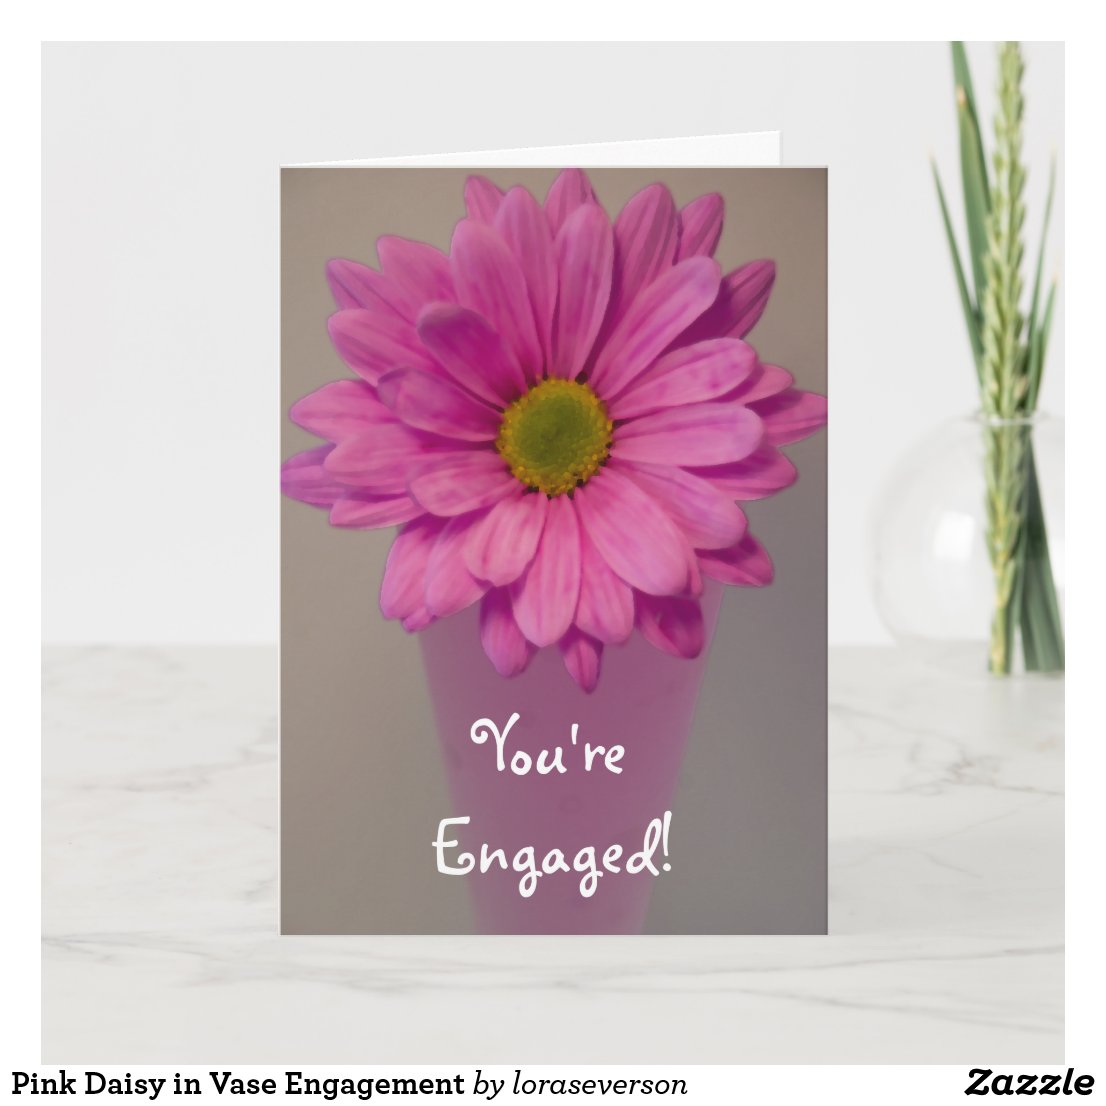 Pink Daisy in Vase Engagement Card